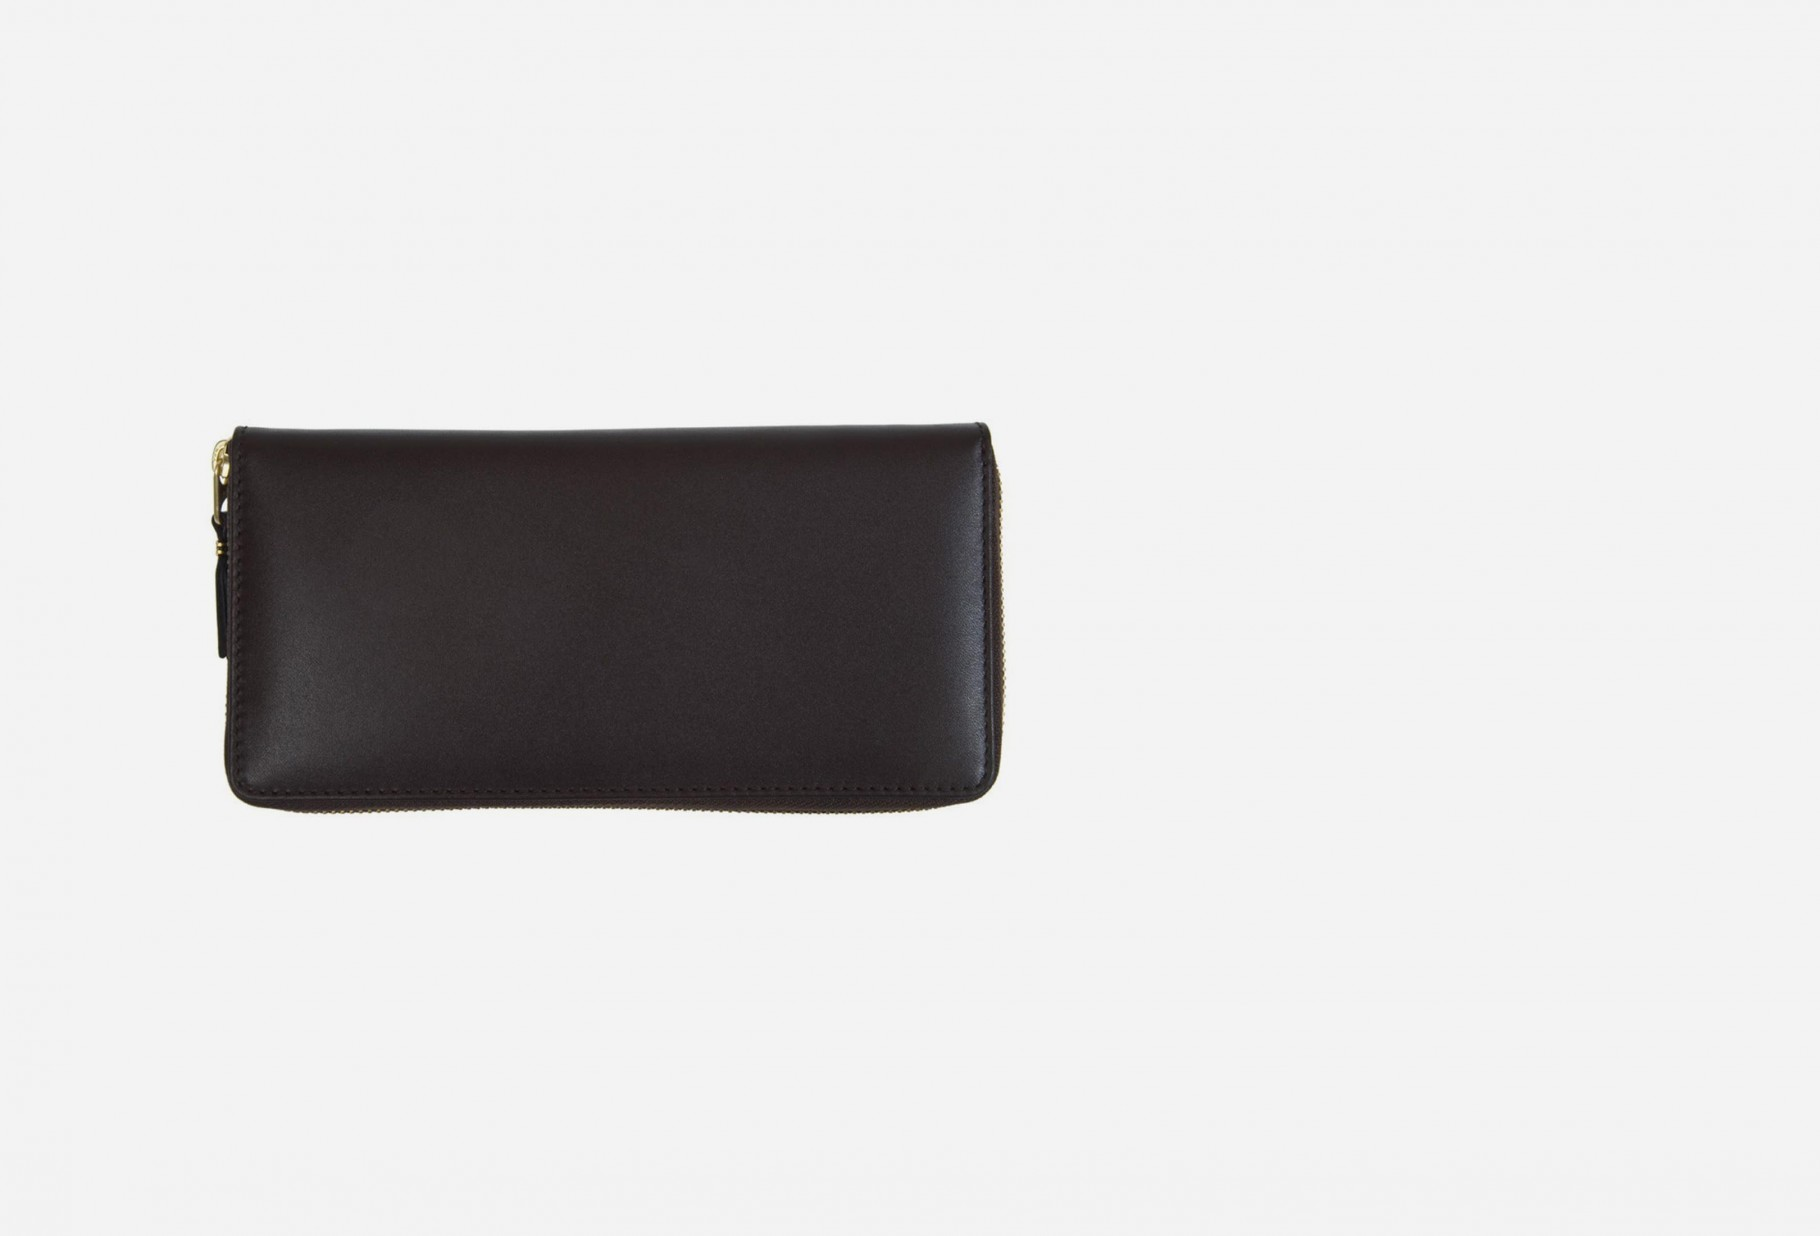 CDG WALLETS FOR WOMAN / Cdg classic leather sa0110 Brown